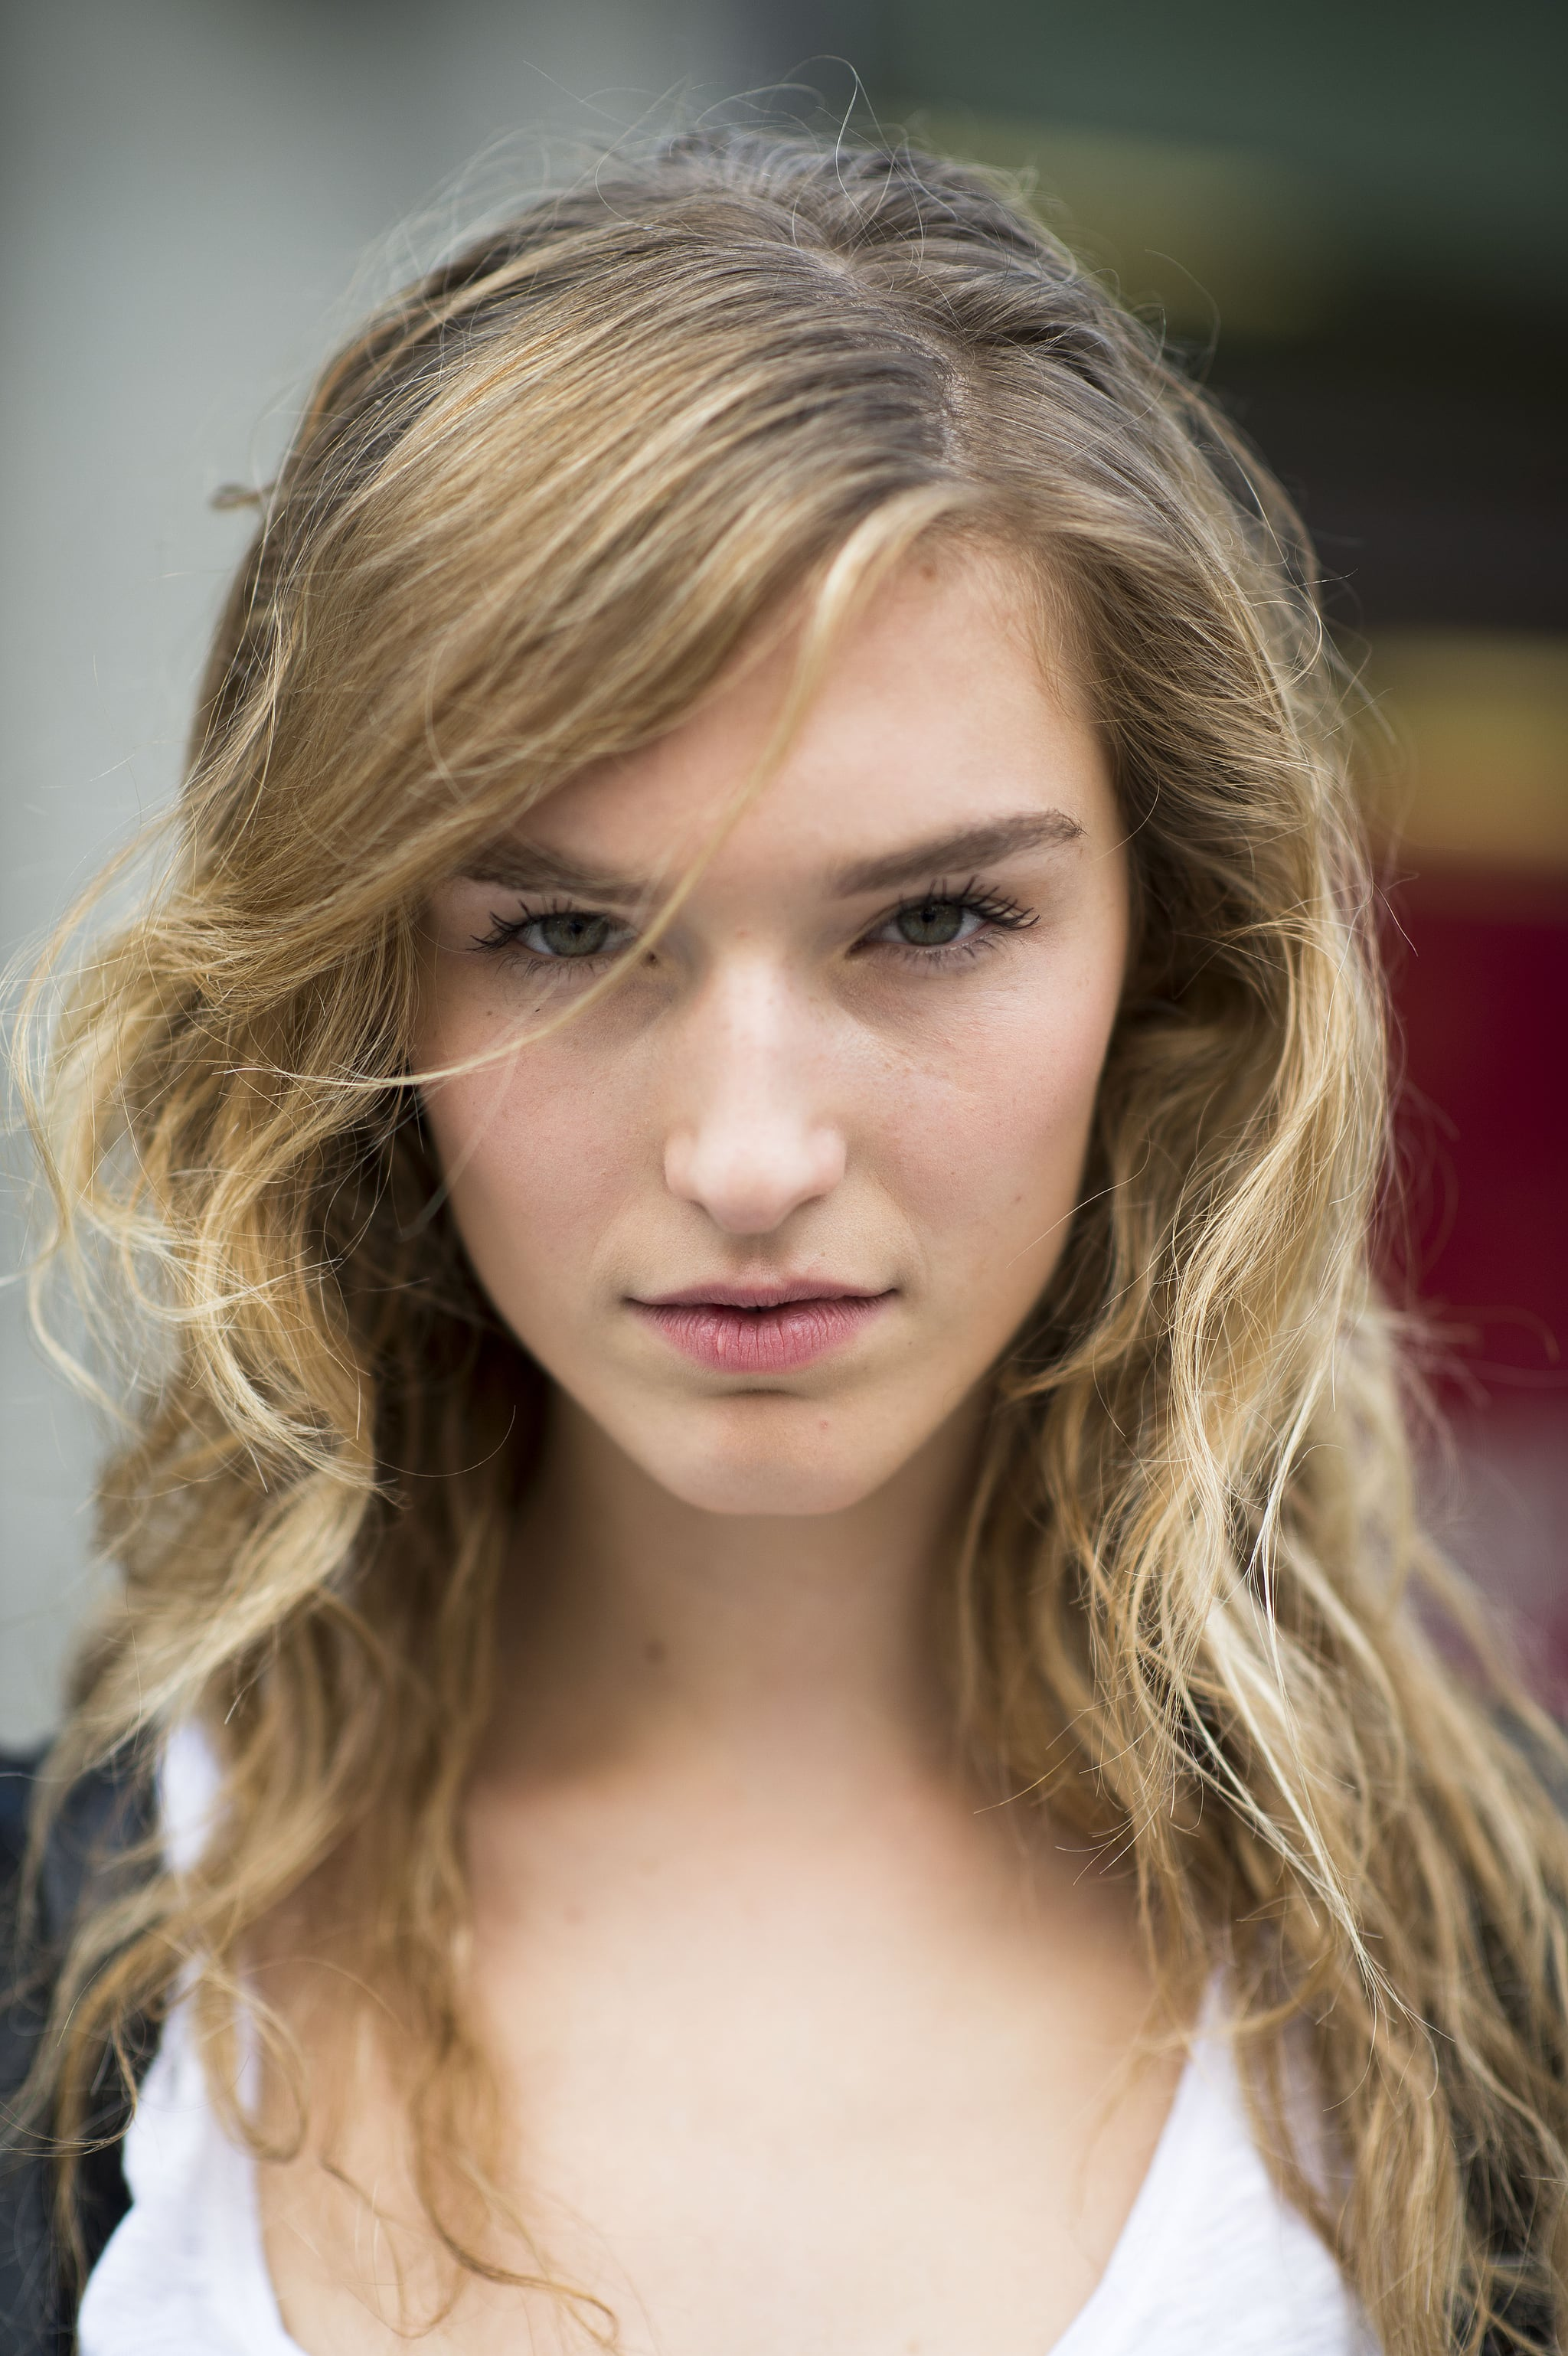 This model proved grunge waves are making a comeback. Source: Le 21ème | Adam Katz Sinding